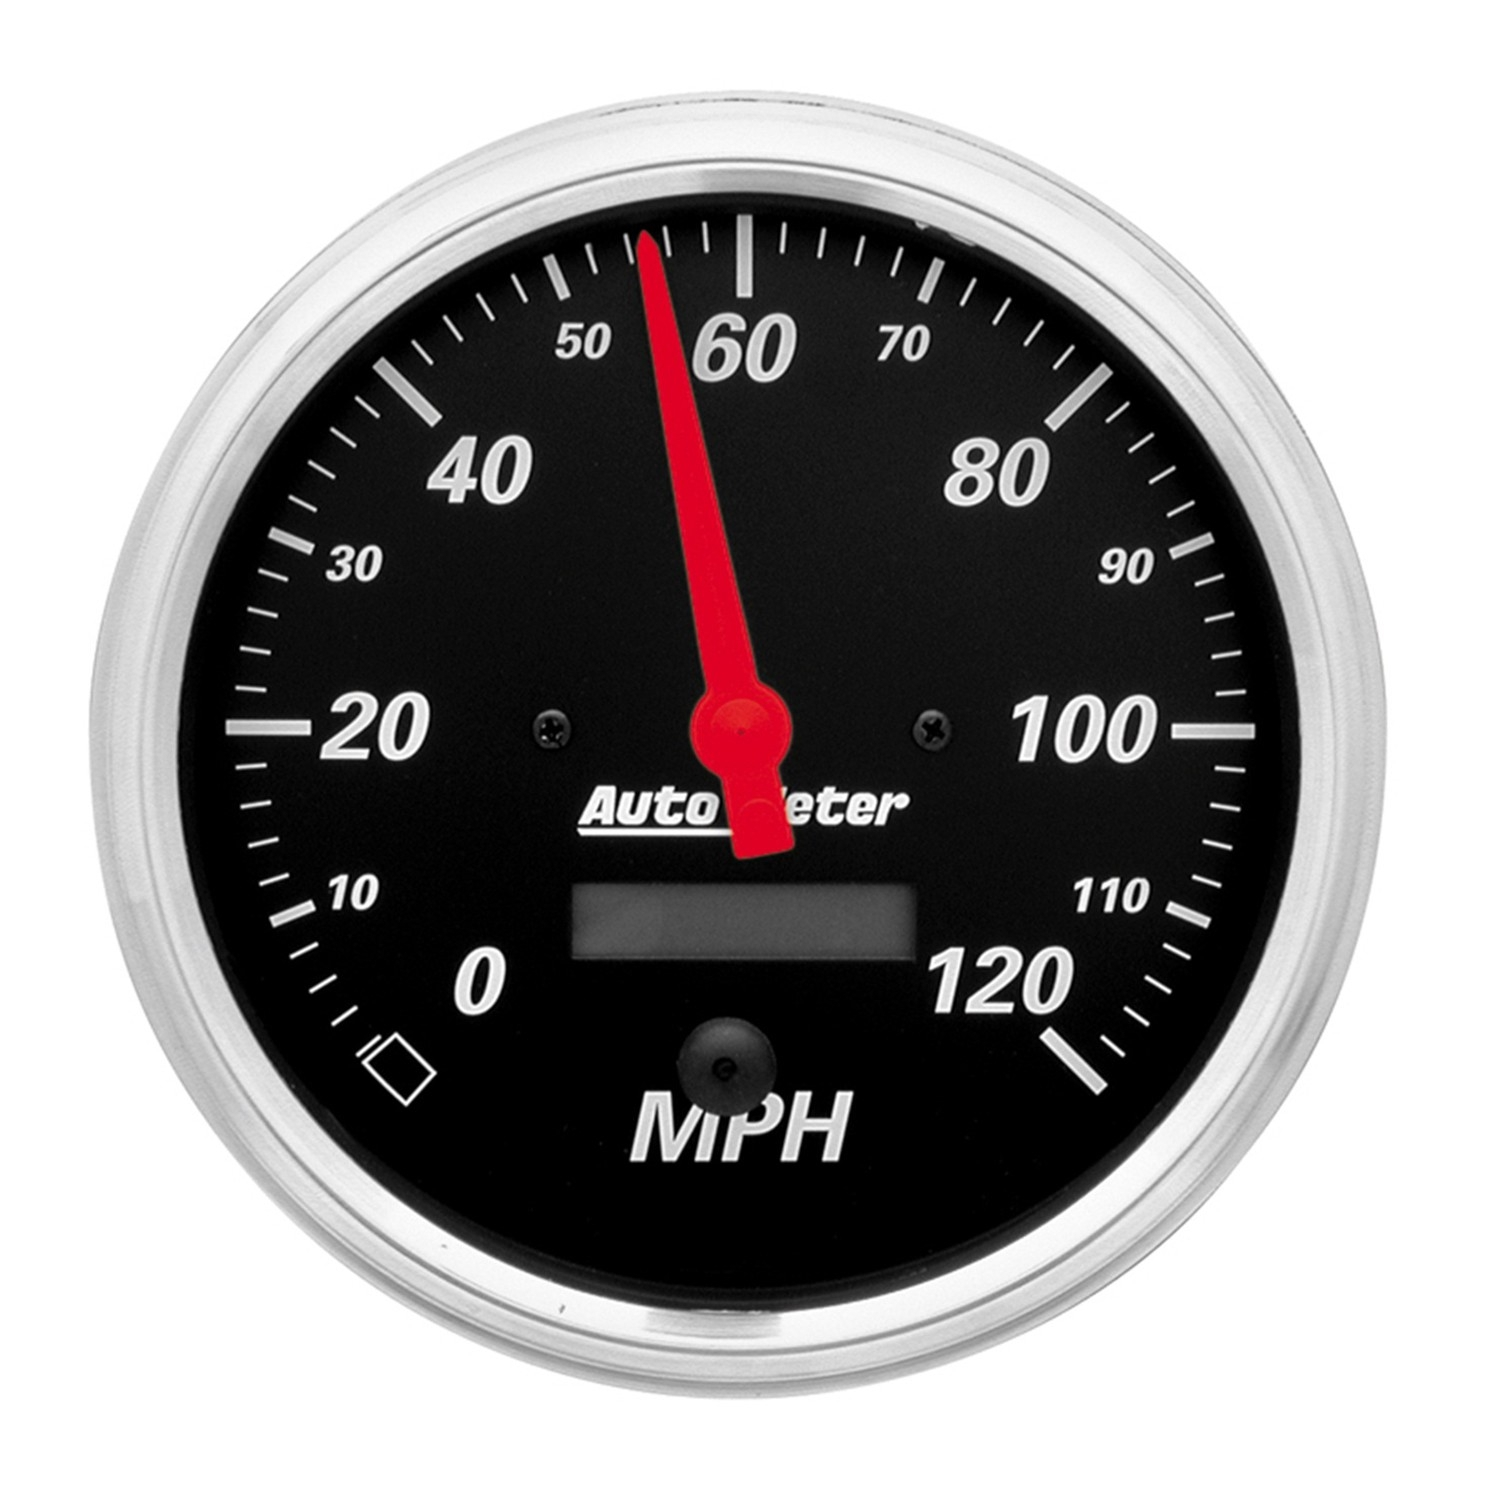 Autometer Gps Speedometer Wiring Diagram Speedometer Mph Electric Designer Black Gauges Ultra Lite Autometer Wideband Wiring Diagram E on auto meter tach gauge wiring diagram